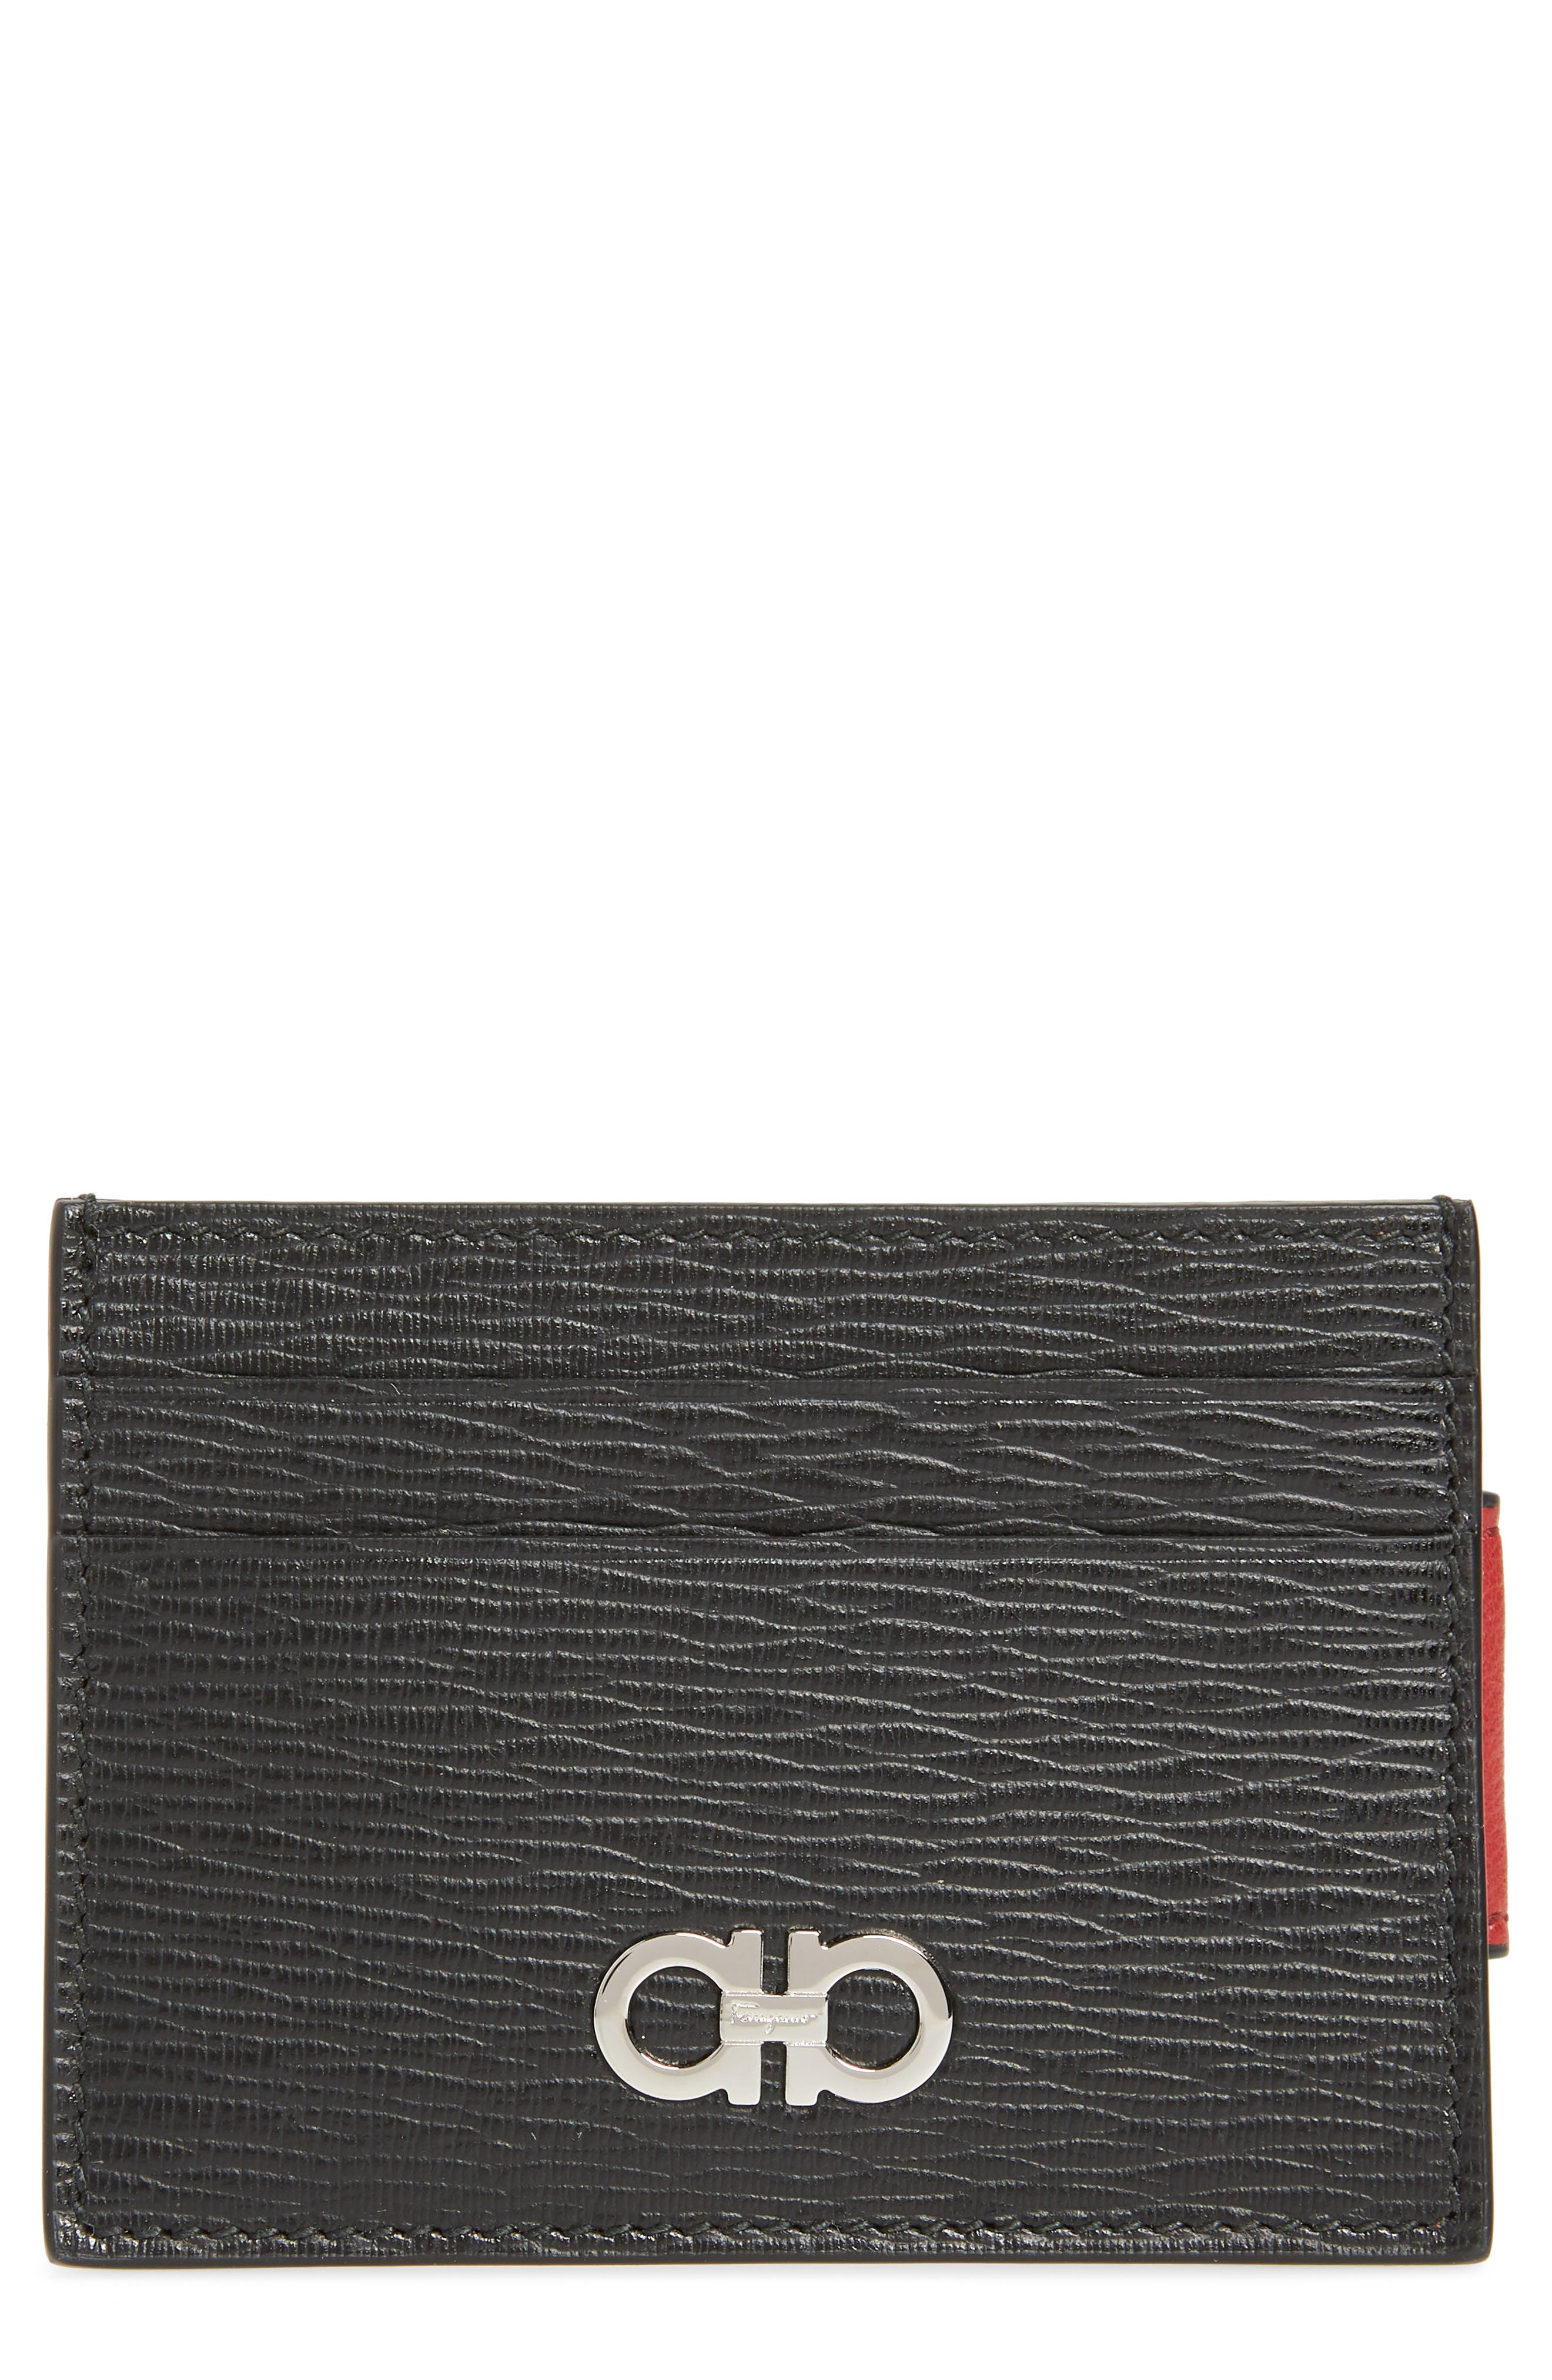 SALVATORE FERRAGAMO, Revival Leather Magnetic Money Clip Card Case, Main thumbnail 1, color, 979